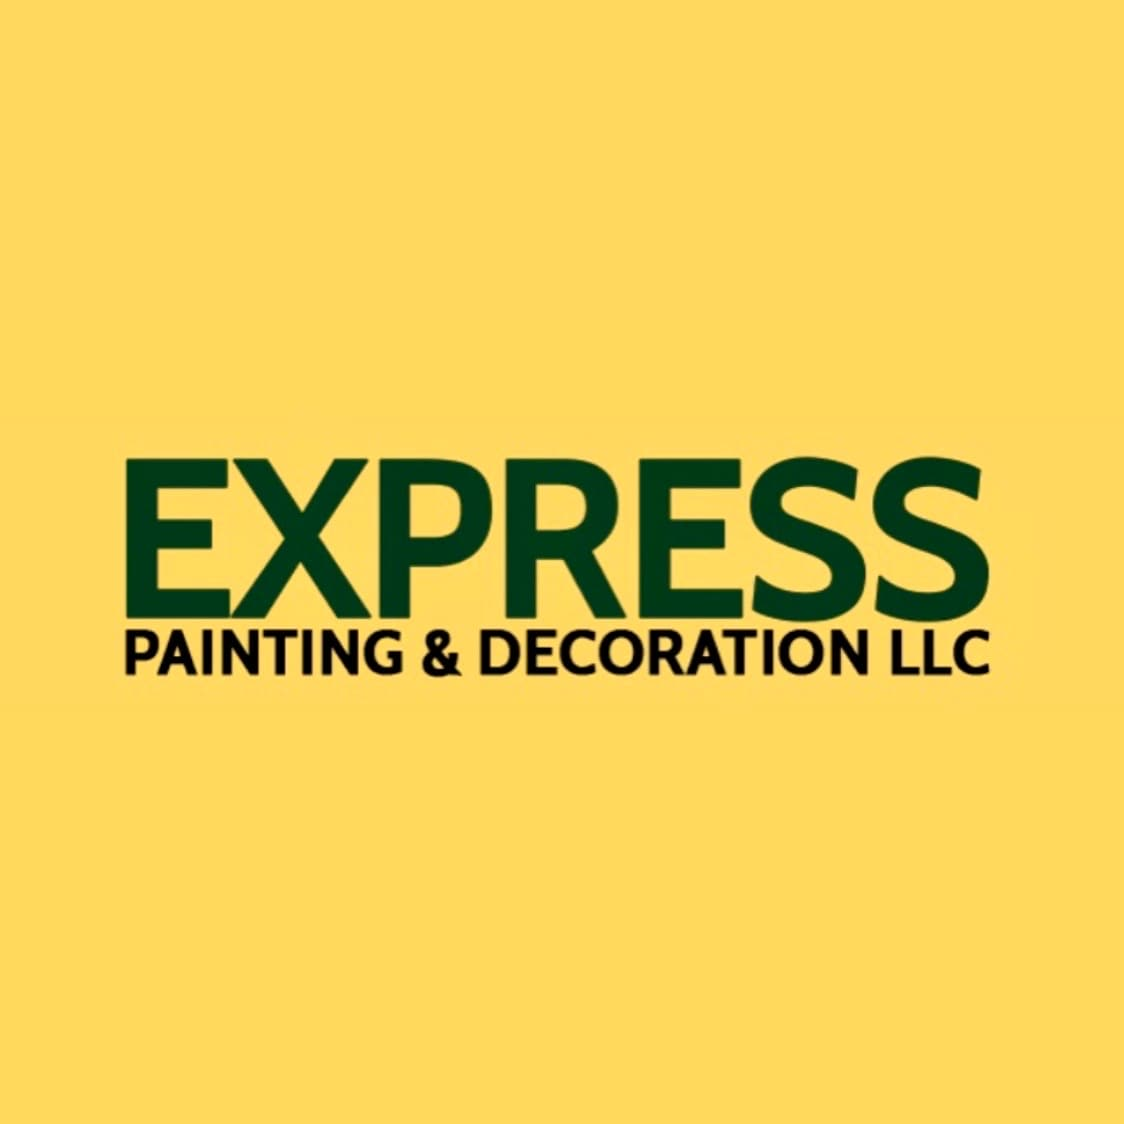 Express Paint & Decoration LLC